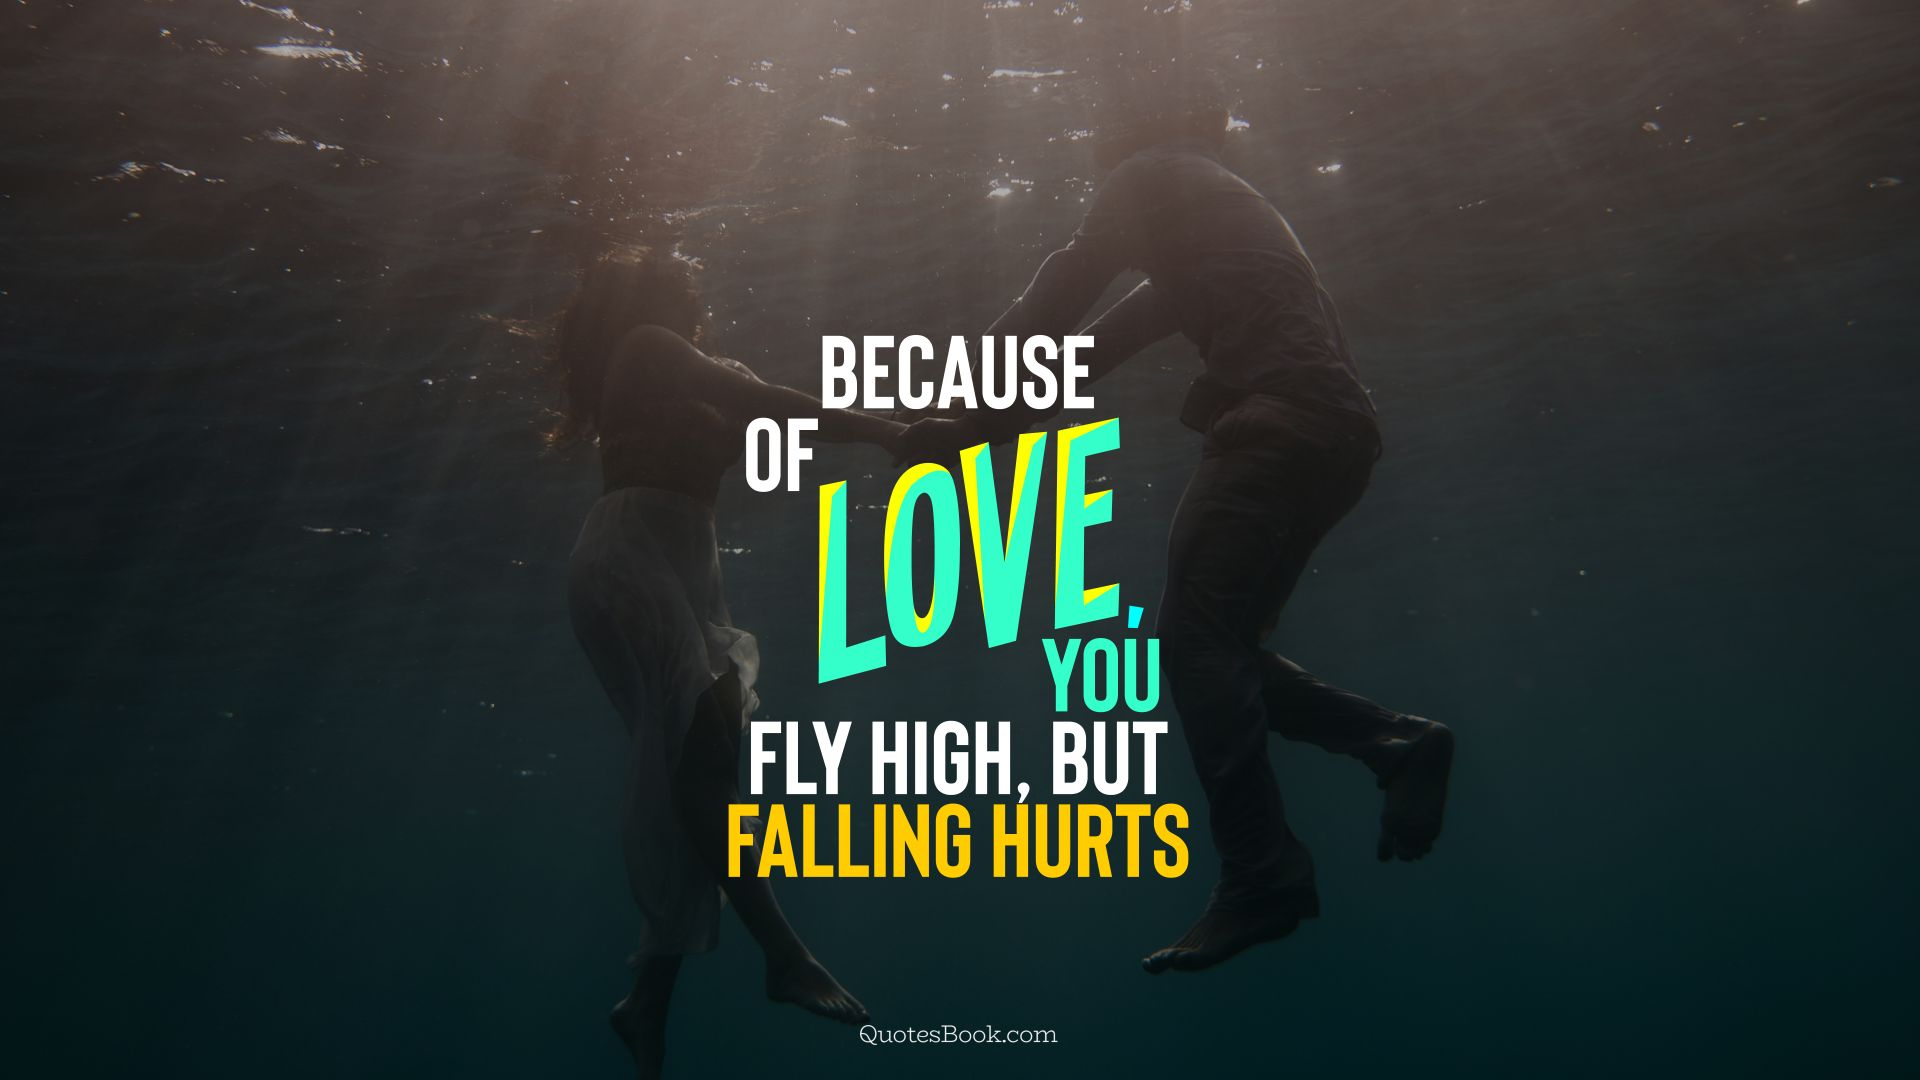 Because of love, you fly high, but falling hurts. - Quote by QuotesBook